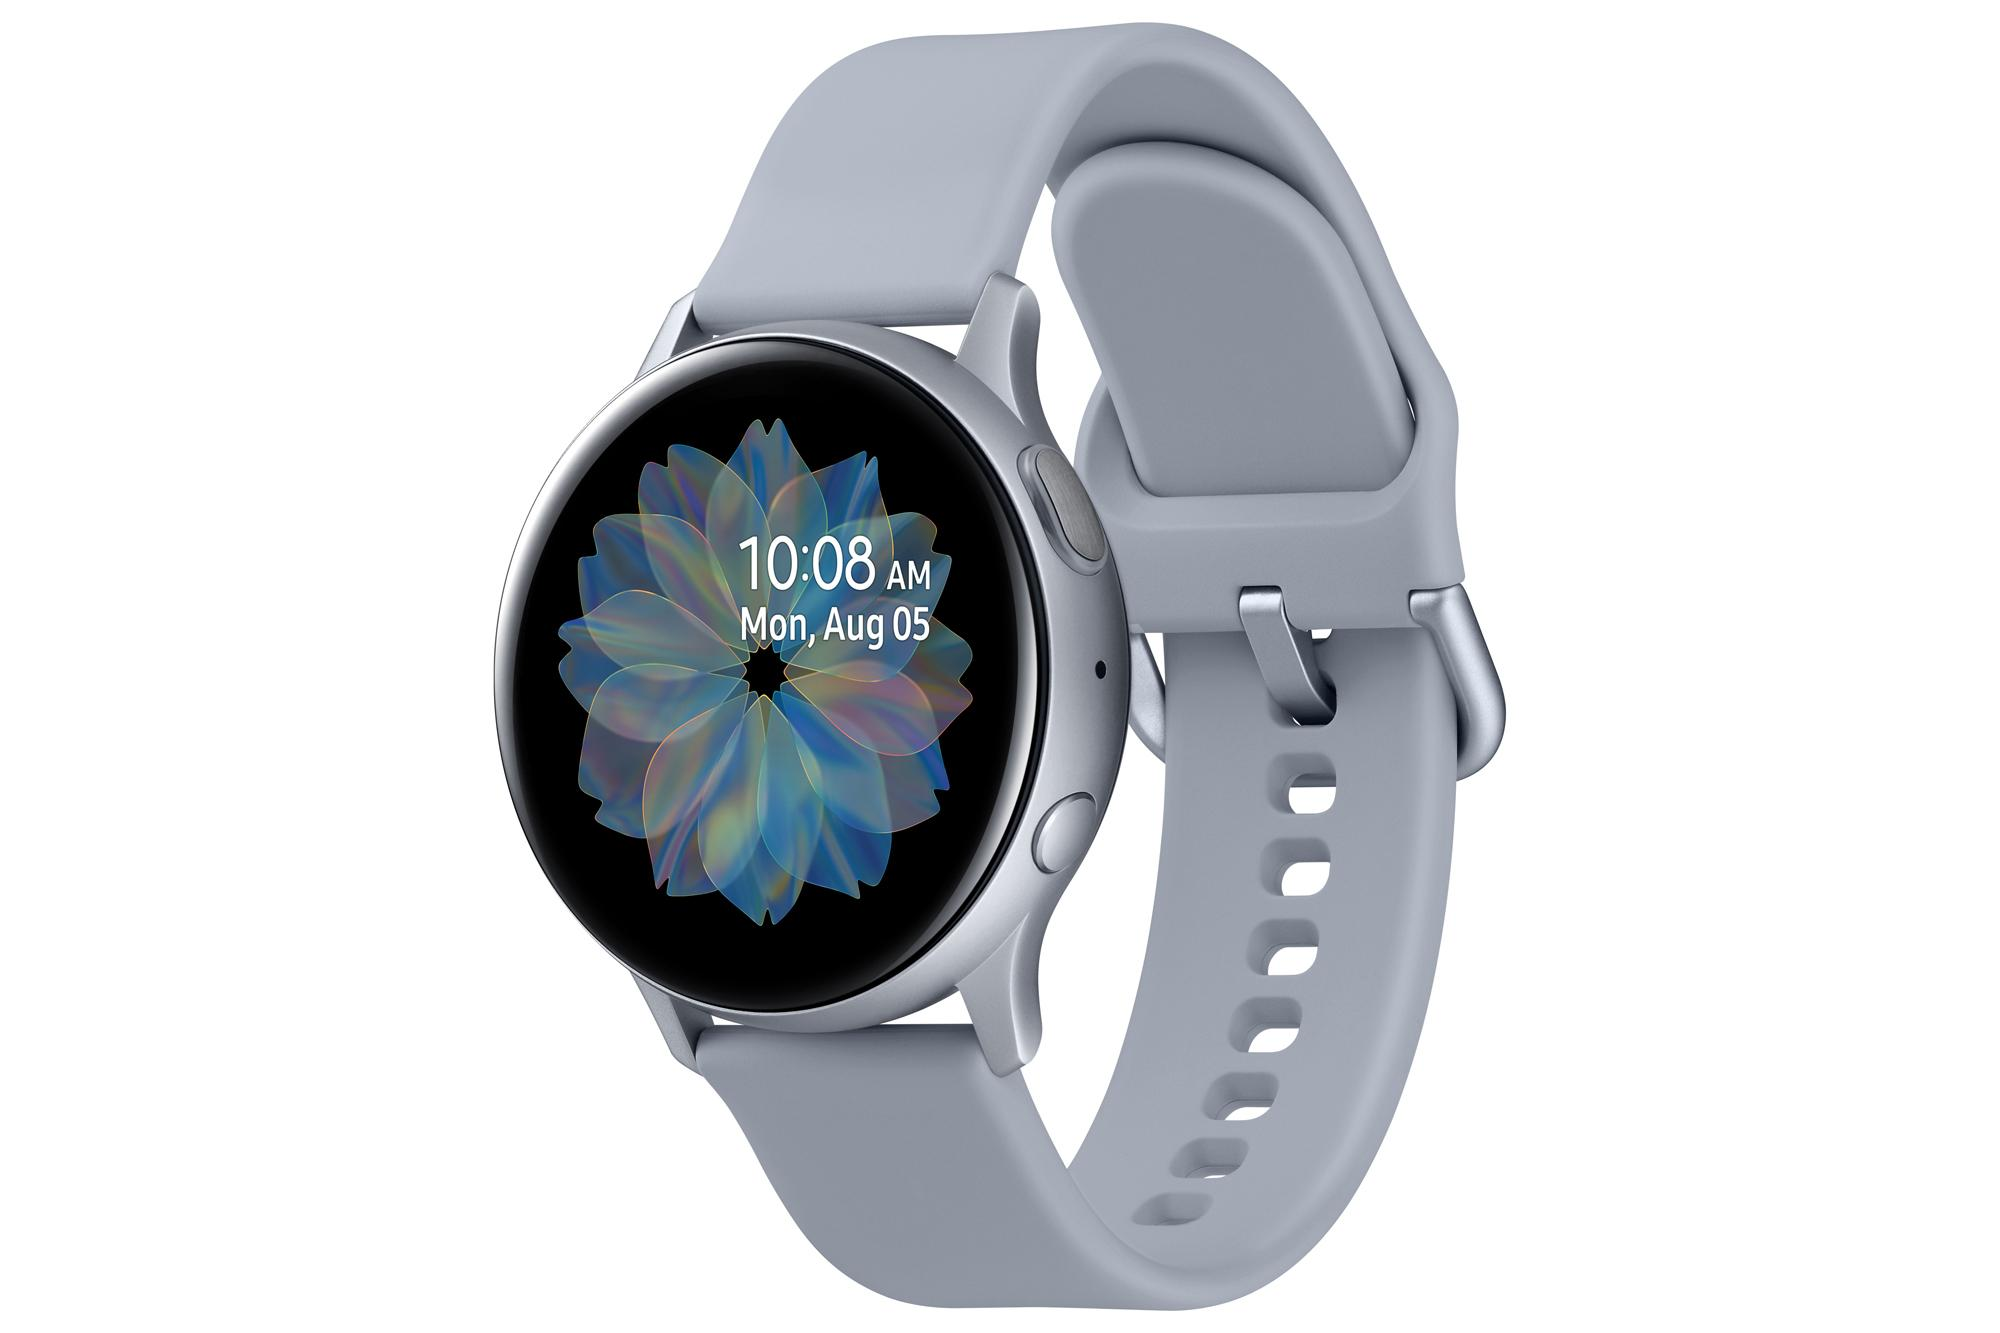 Electrocardiogram Monitoring Cleared for Galaxy Watch Active2